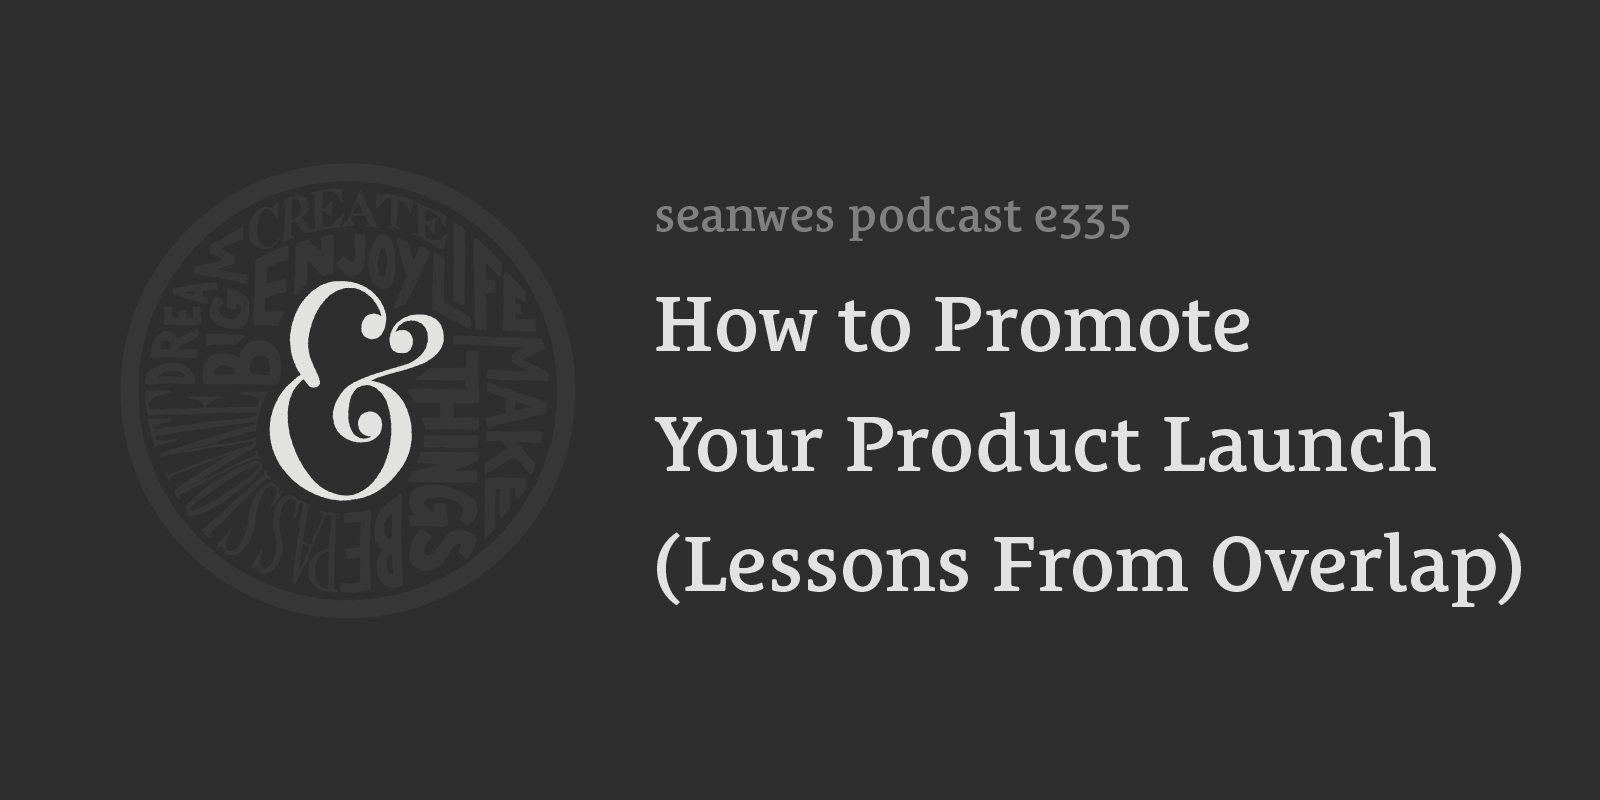 How to Promote Your Product Launch (Lessons From Overlap)